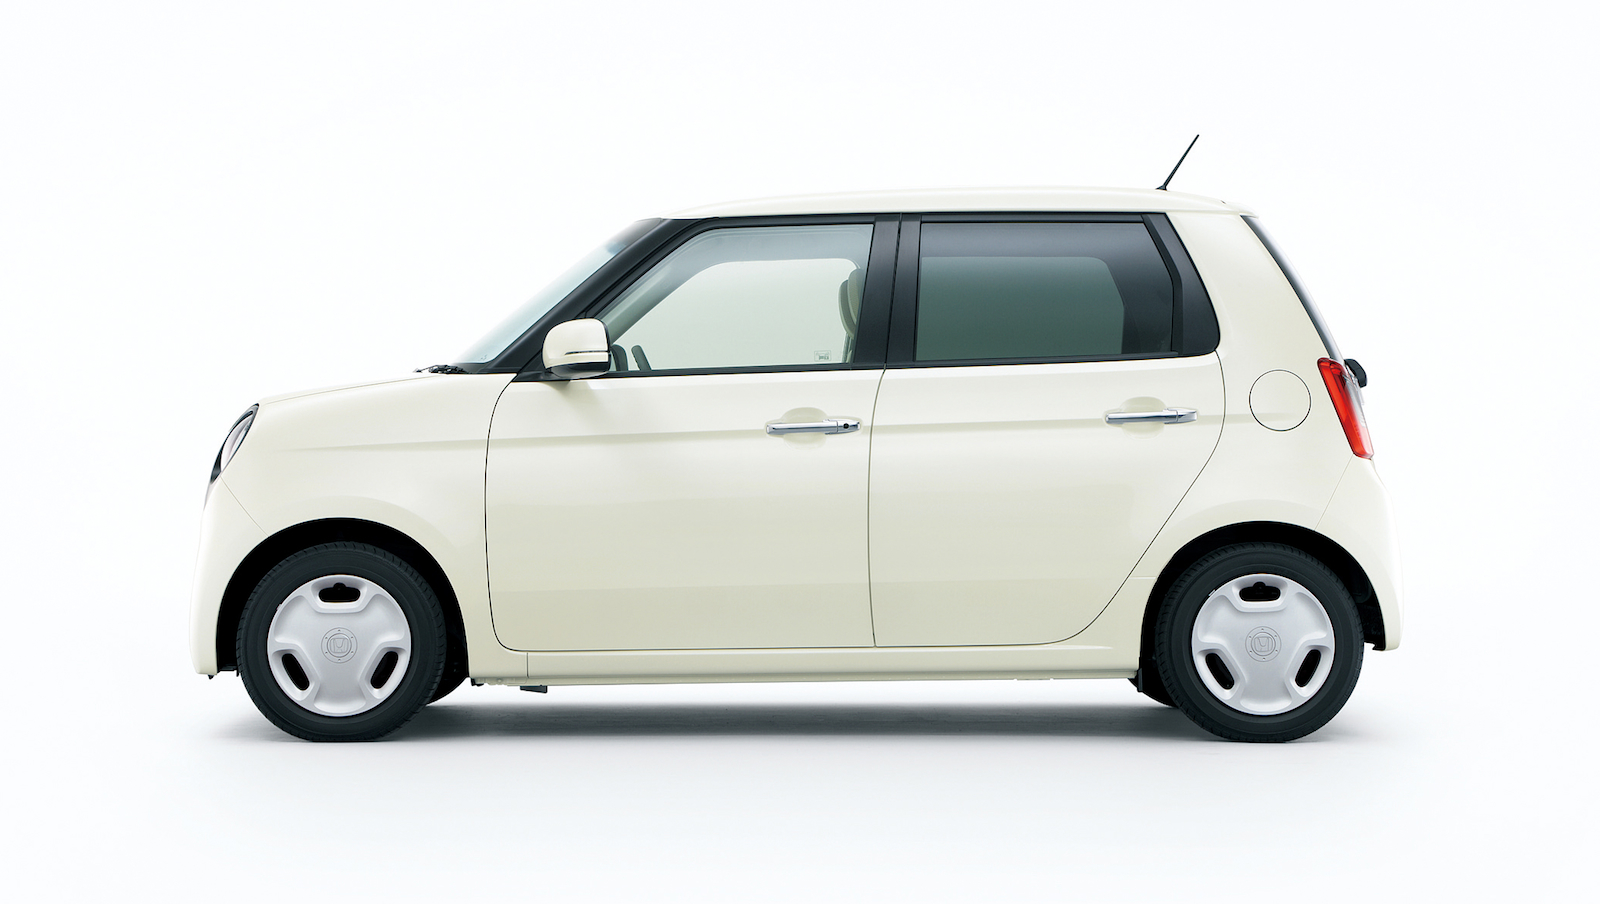 Kei Cars Japan S Tiny But Often High Tech Minicars